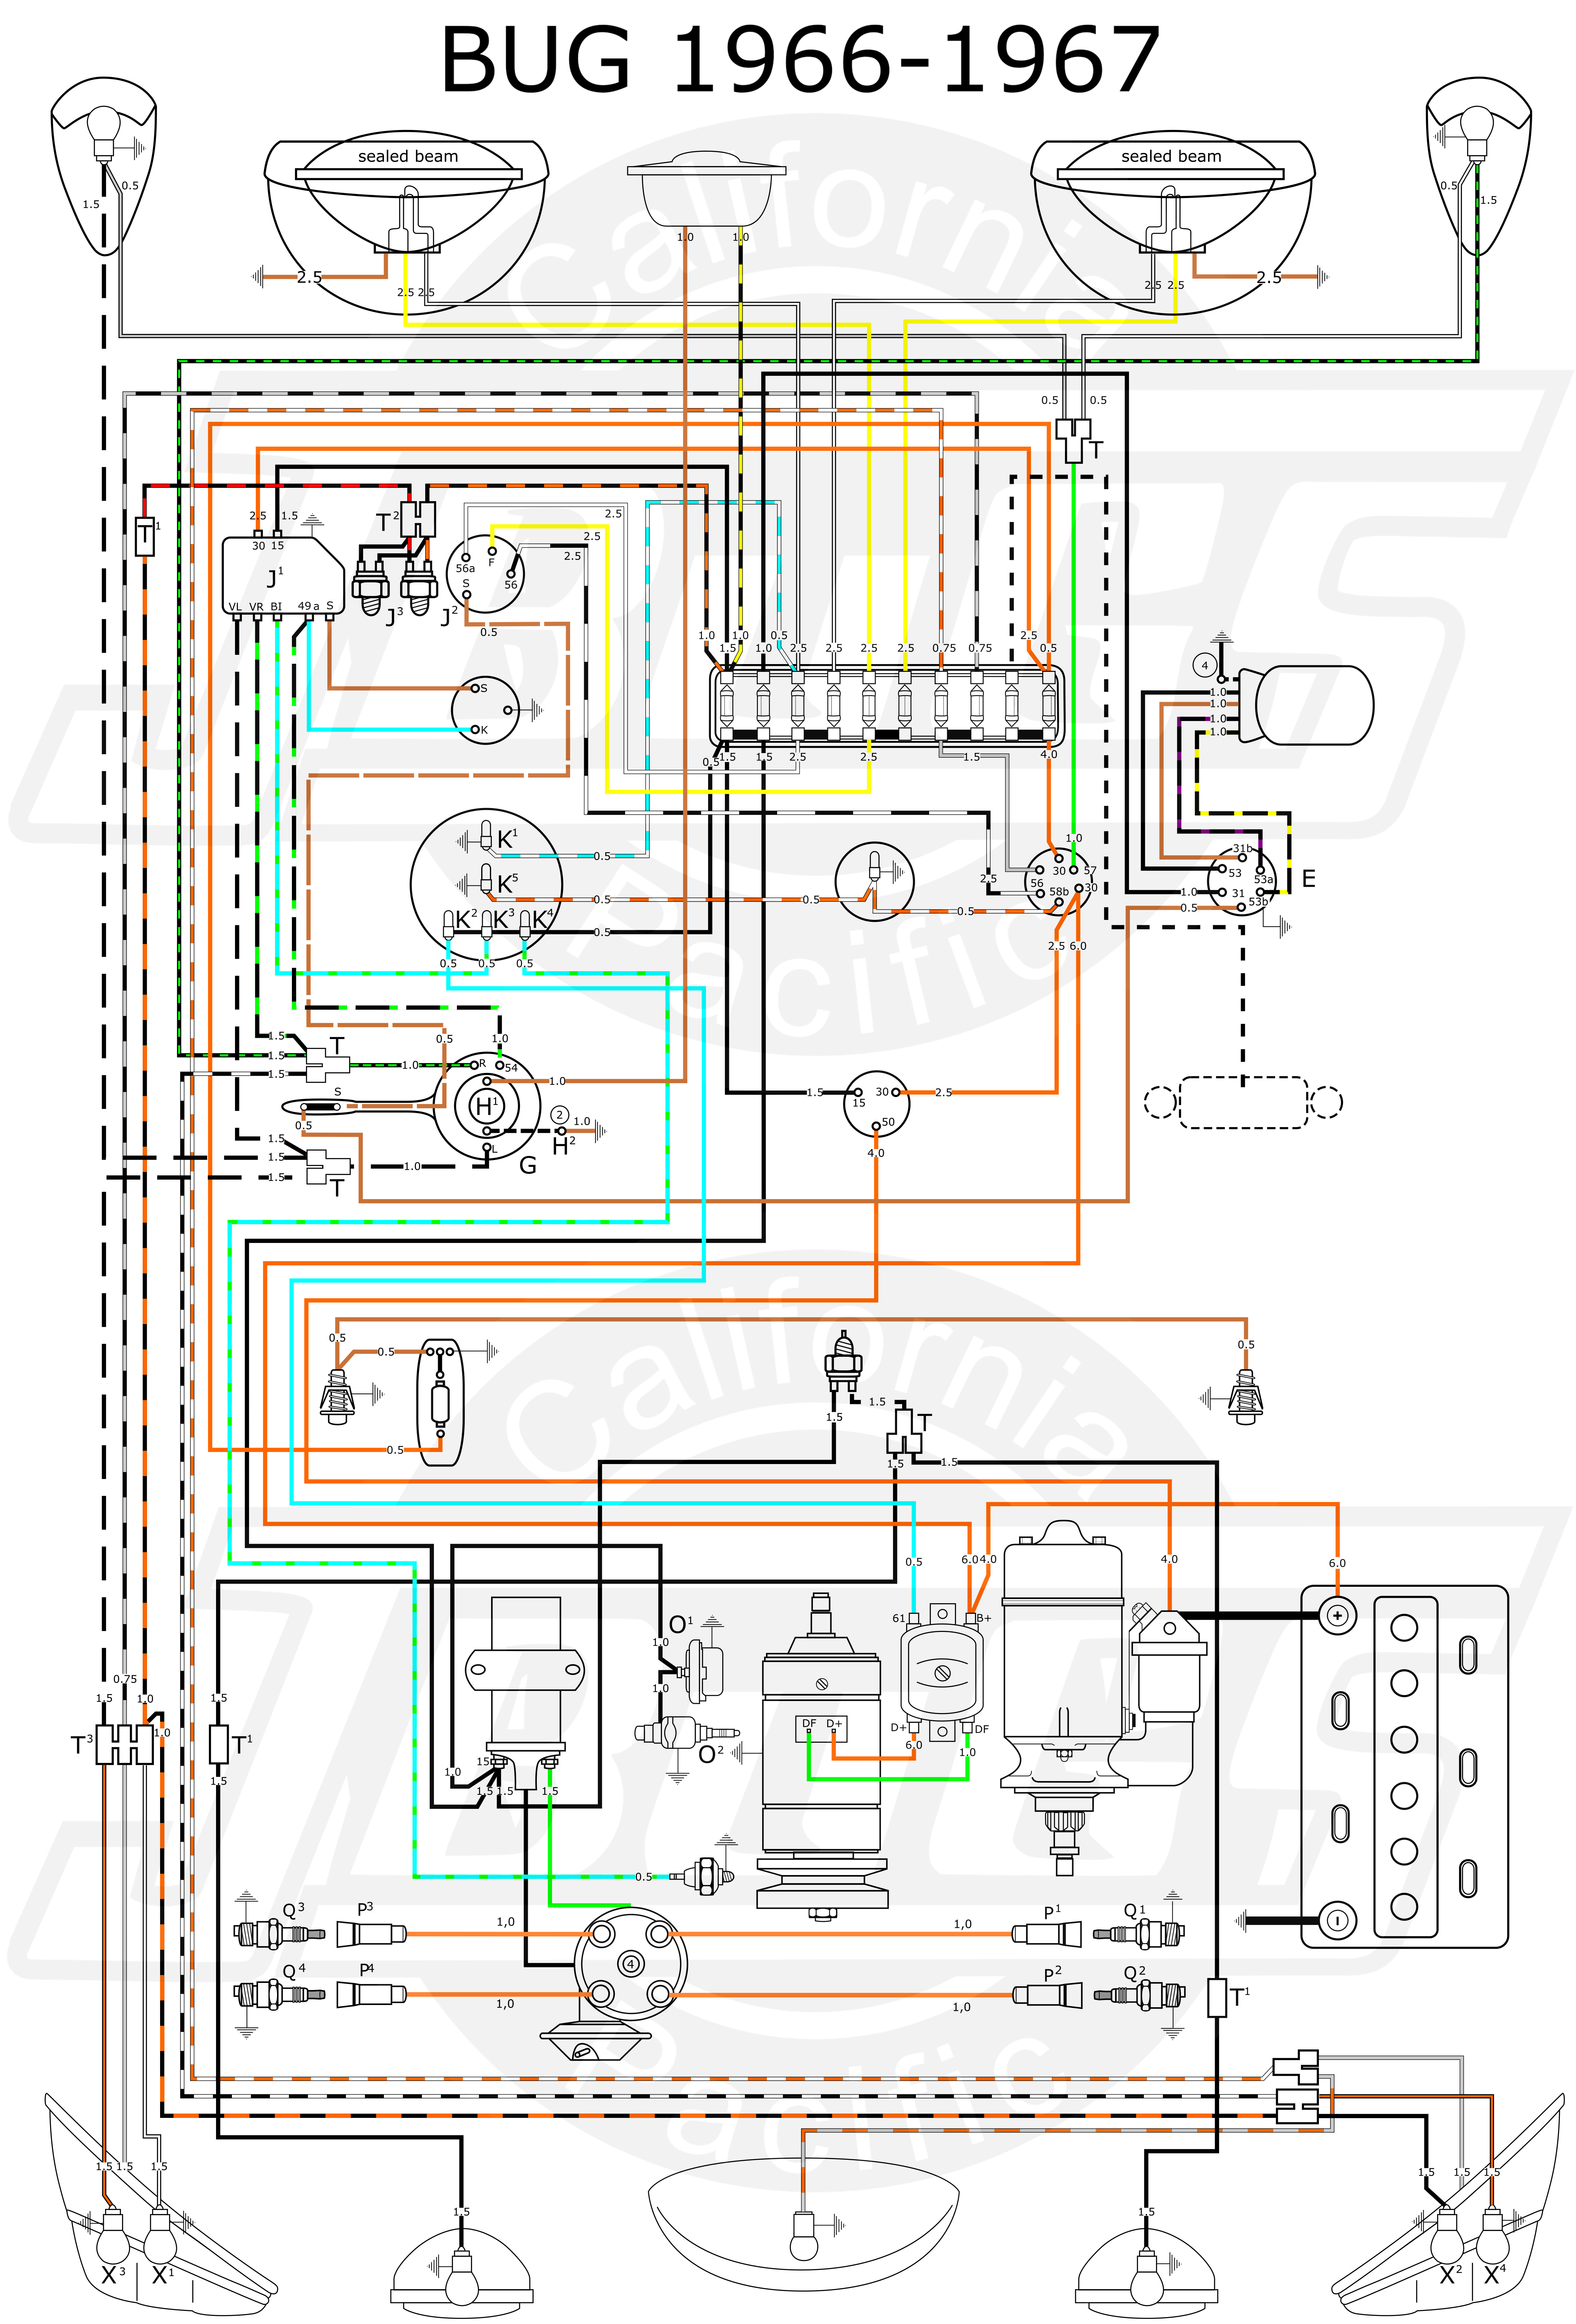 VW Bug 1966 67 Wiring Diagram vw tech article 1966 67 wiring diagram 1965 vw beetle wiring diagram at nearapp.co